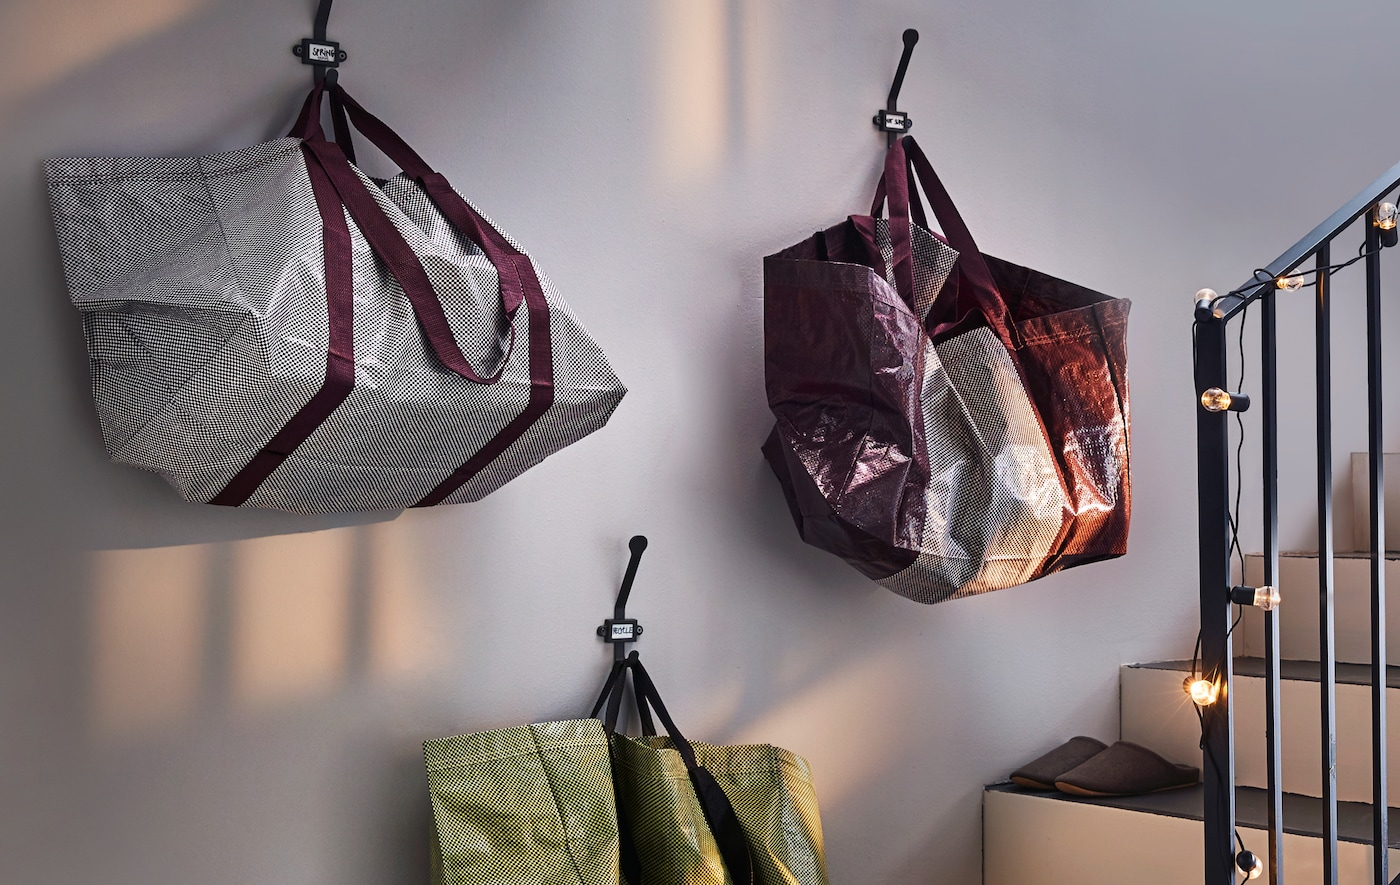 Three storage bags in a mix of greens, whites, purple and yellow hanging from the wall near a staircase.